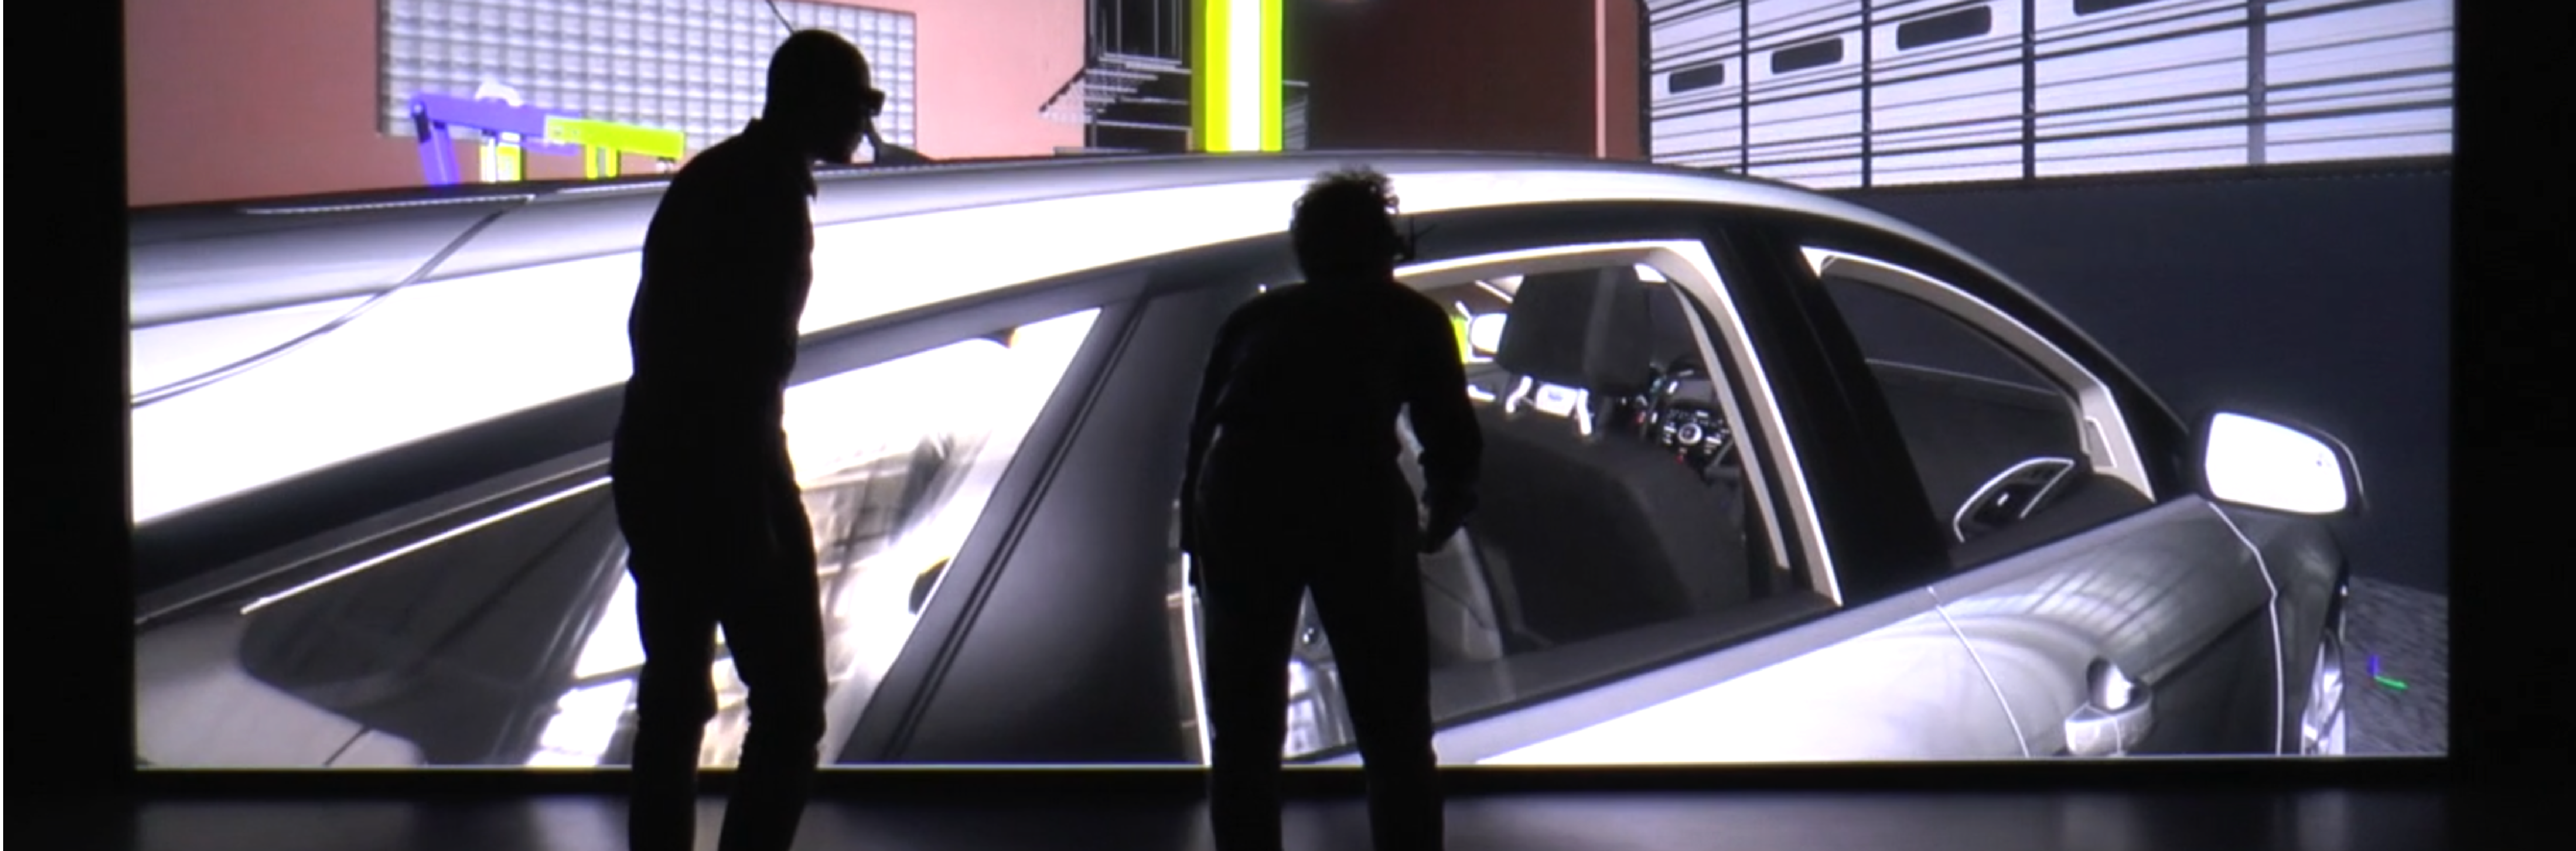 XiLab is an advanced simulation laboratory using VR and AR for UX design